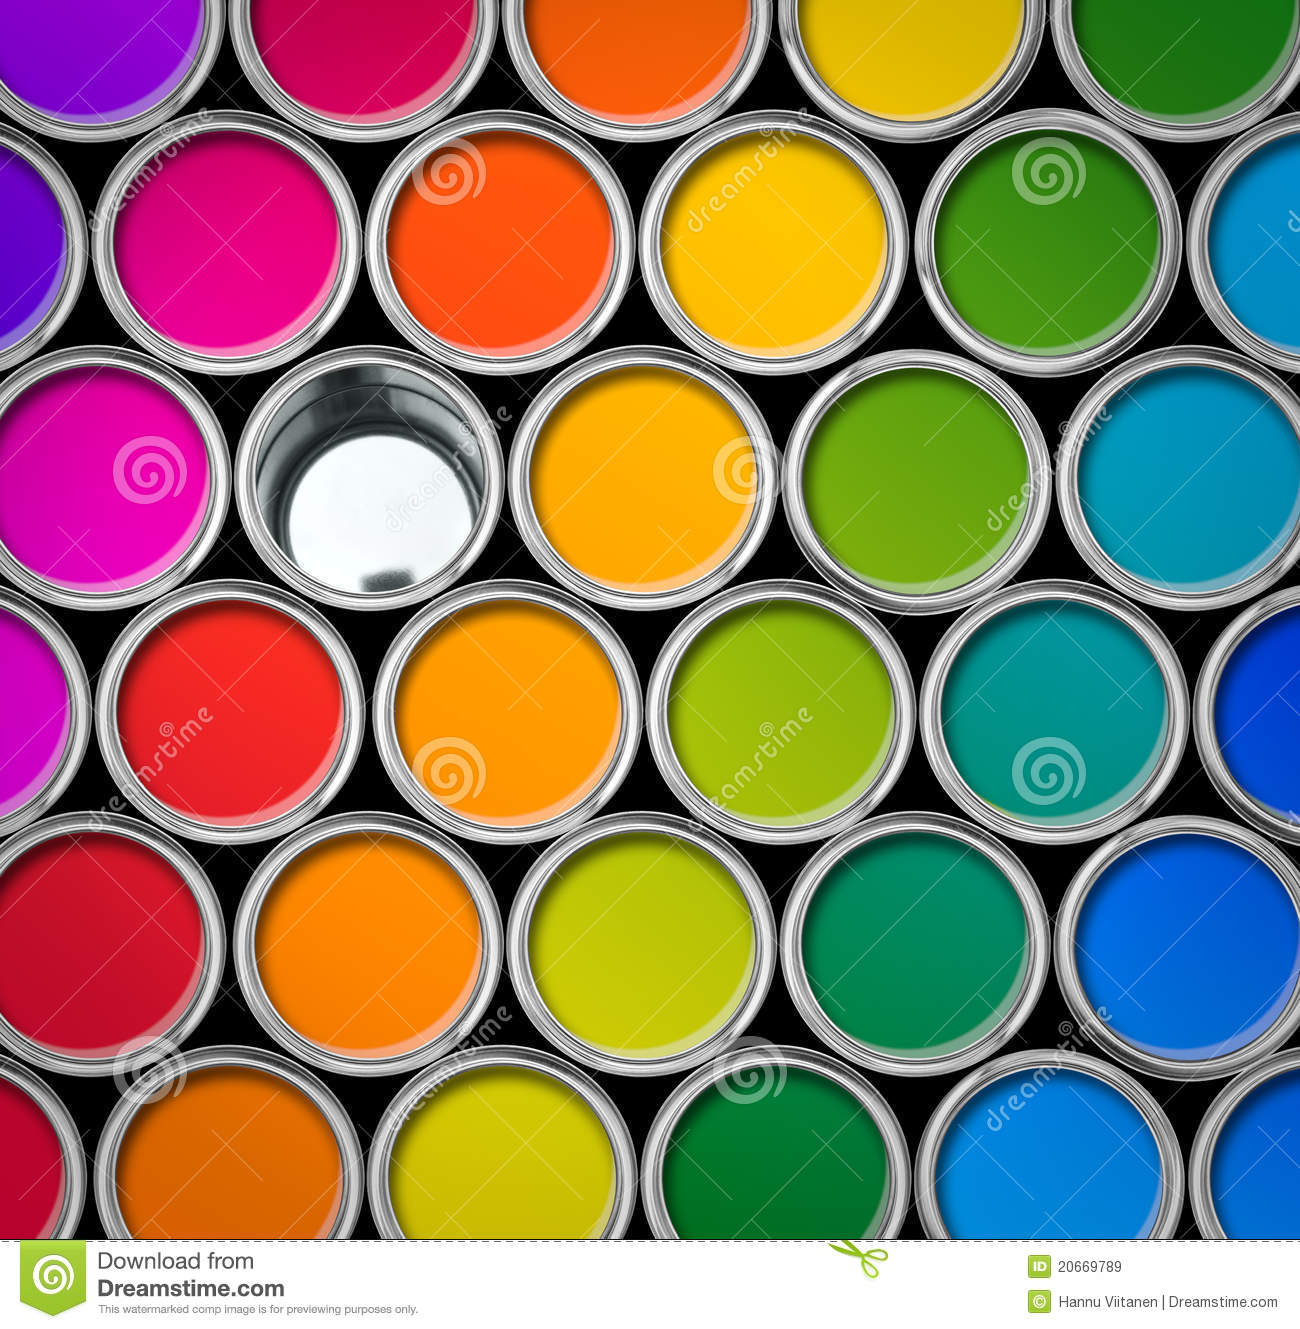 Color Paint Tin Cans Top View Stock Image  Image 20669789. Living Room Boston. Modern Living Room With Brick Fireplace. Contemporary Living Room Collections. Living Room Furniture Elegant. Living Room East Hampton Maidstone. Cheap White Living Room Furniture Uk. Living Room Seating Bench. Living Room With 2 Doors